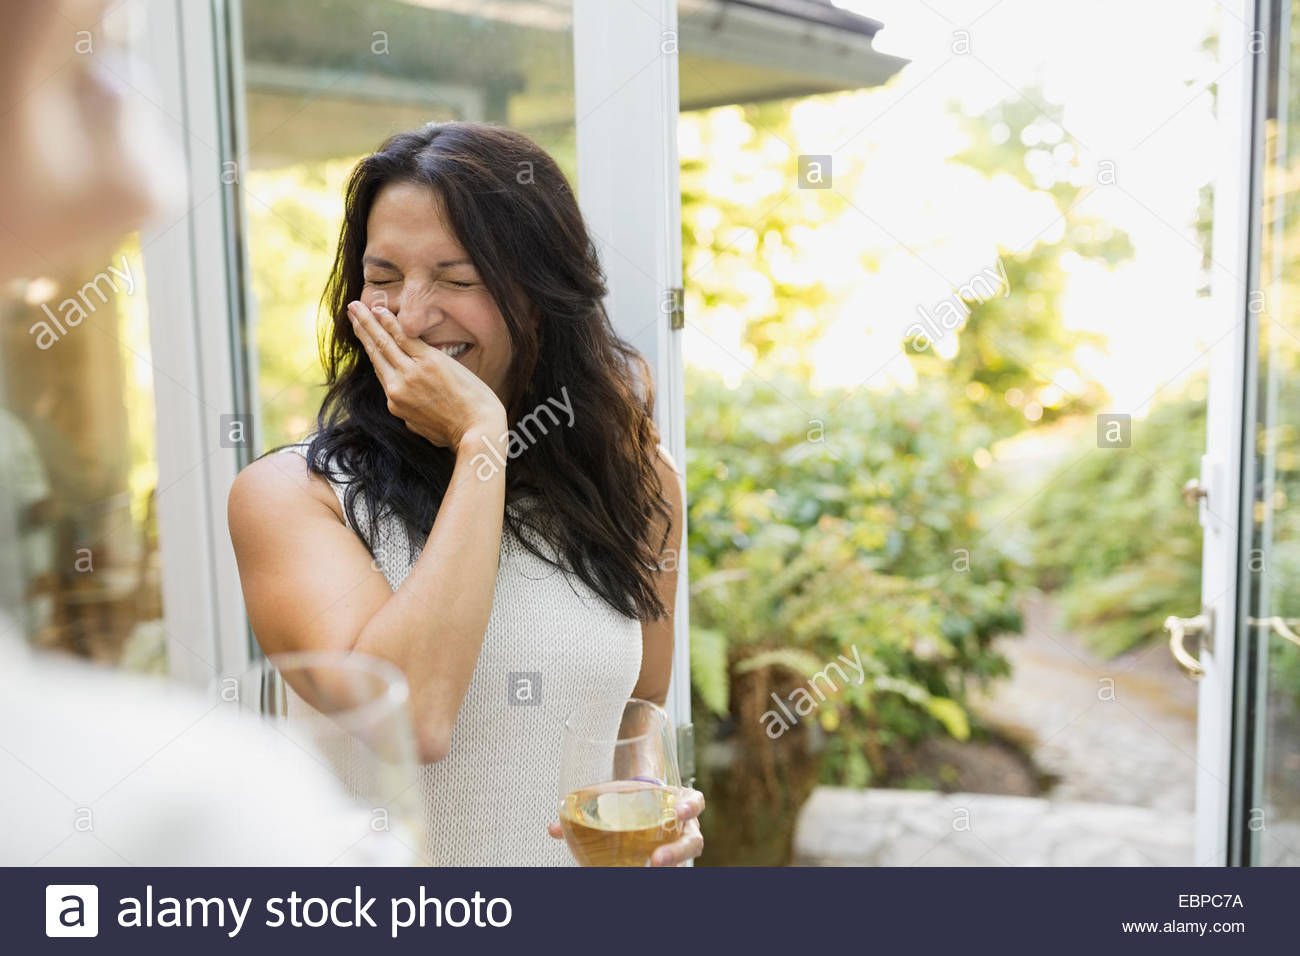 Woman with white wine laughing in kitchen - Stock Image